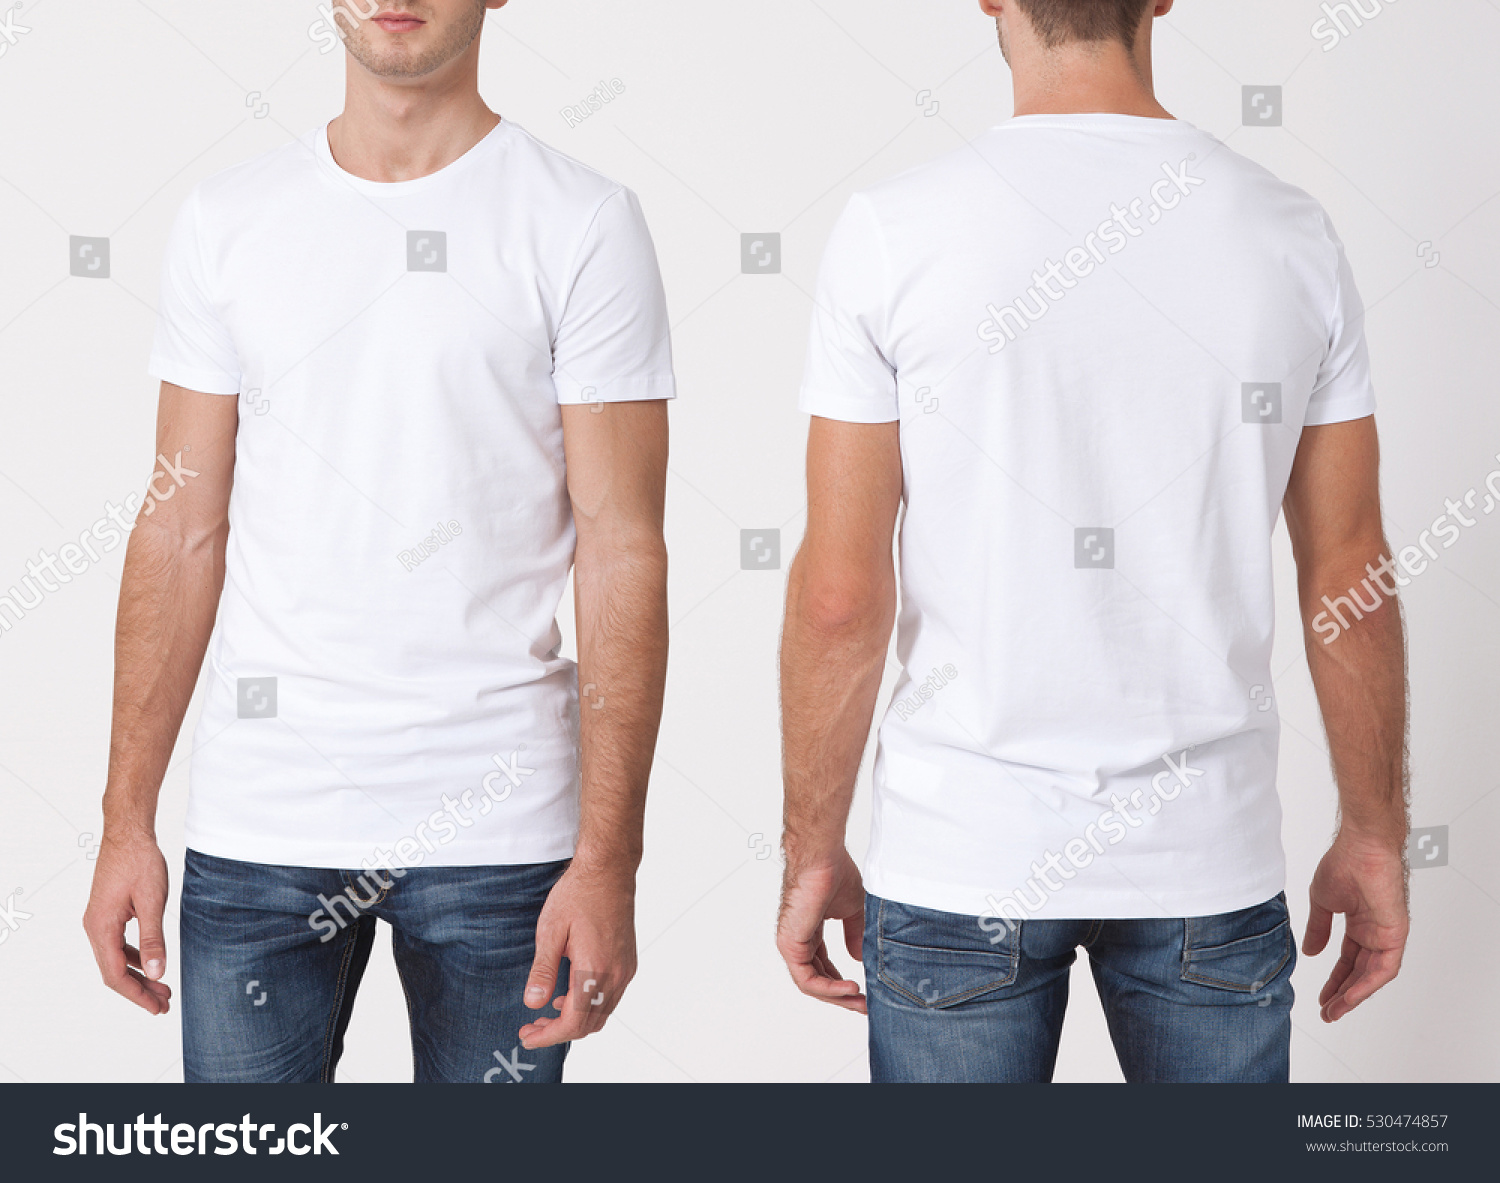 Shirt design white - T Shirt Design And People Concept Close Up Of Young Man In Blank White